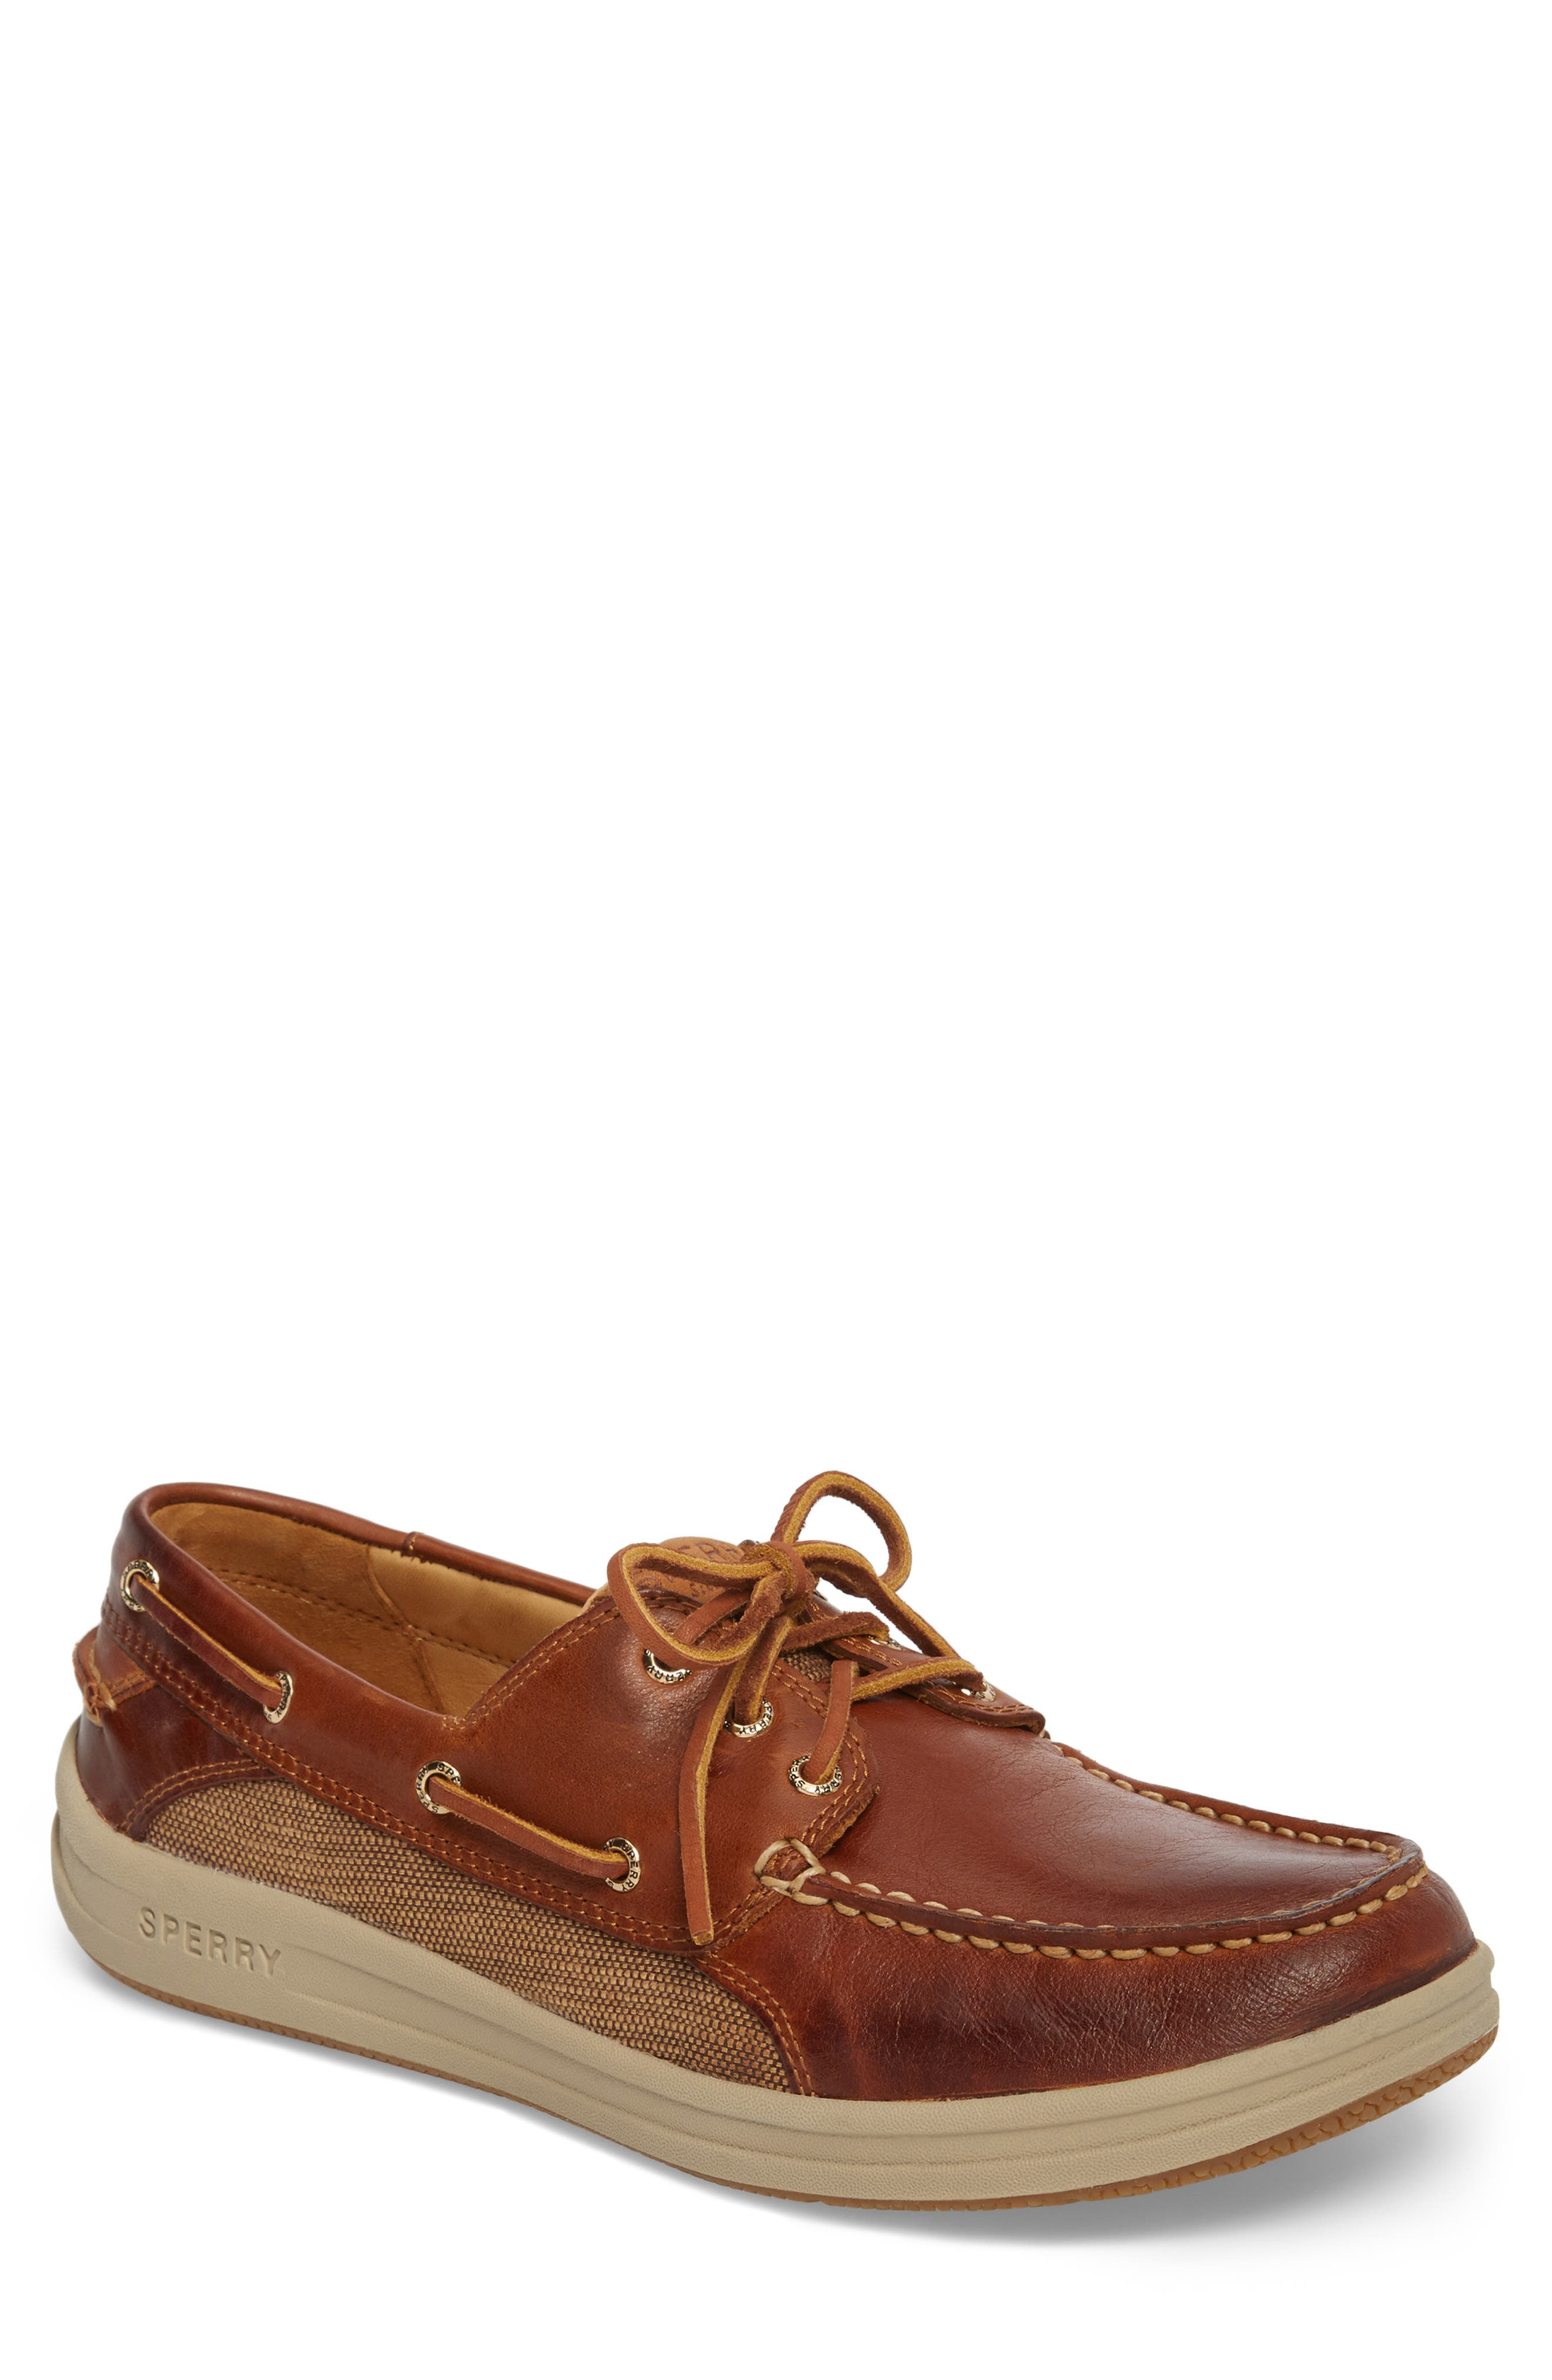 Gold Cup Gamefish Boat Shoe,                             Main thumbnail 1, color,                             BROWN LEATHER